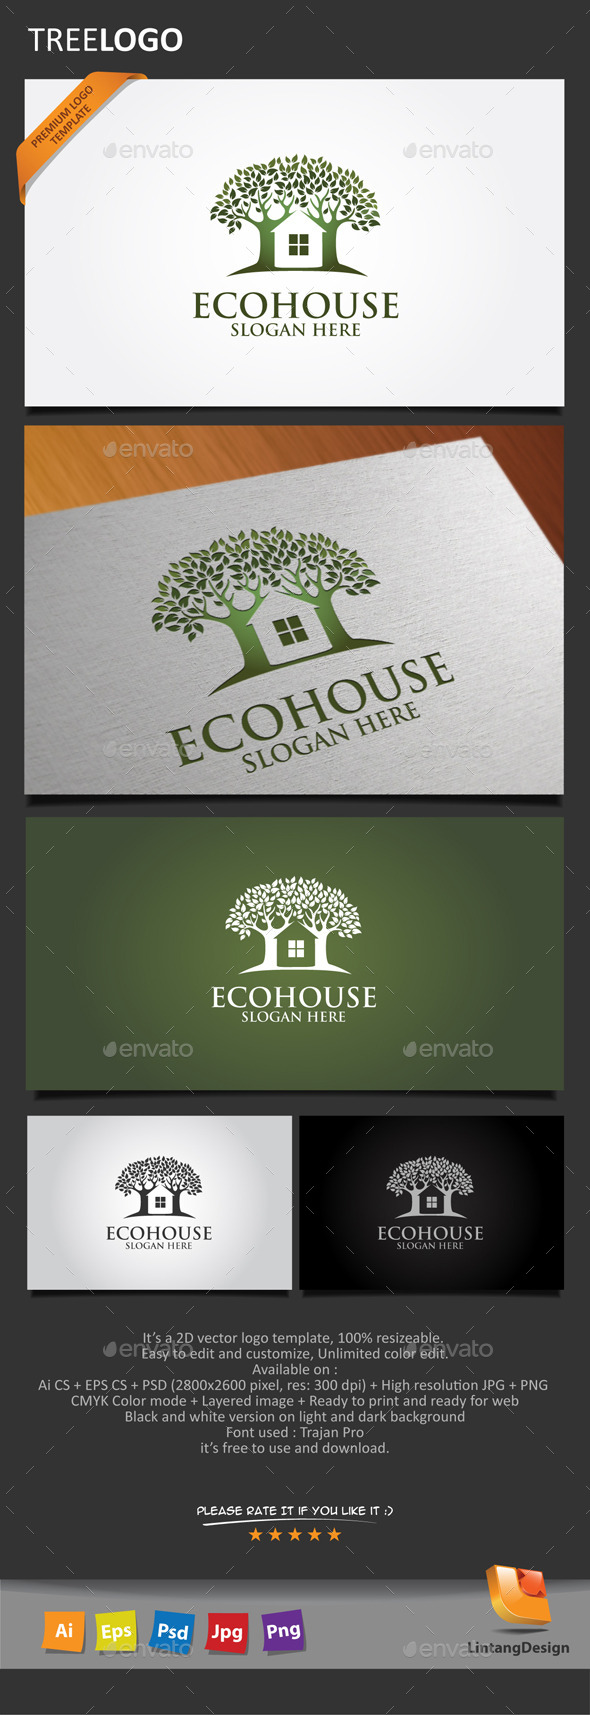 GraphicRiver Tree Logo-007 10654961